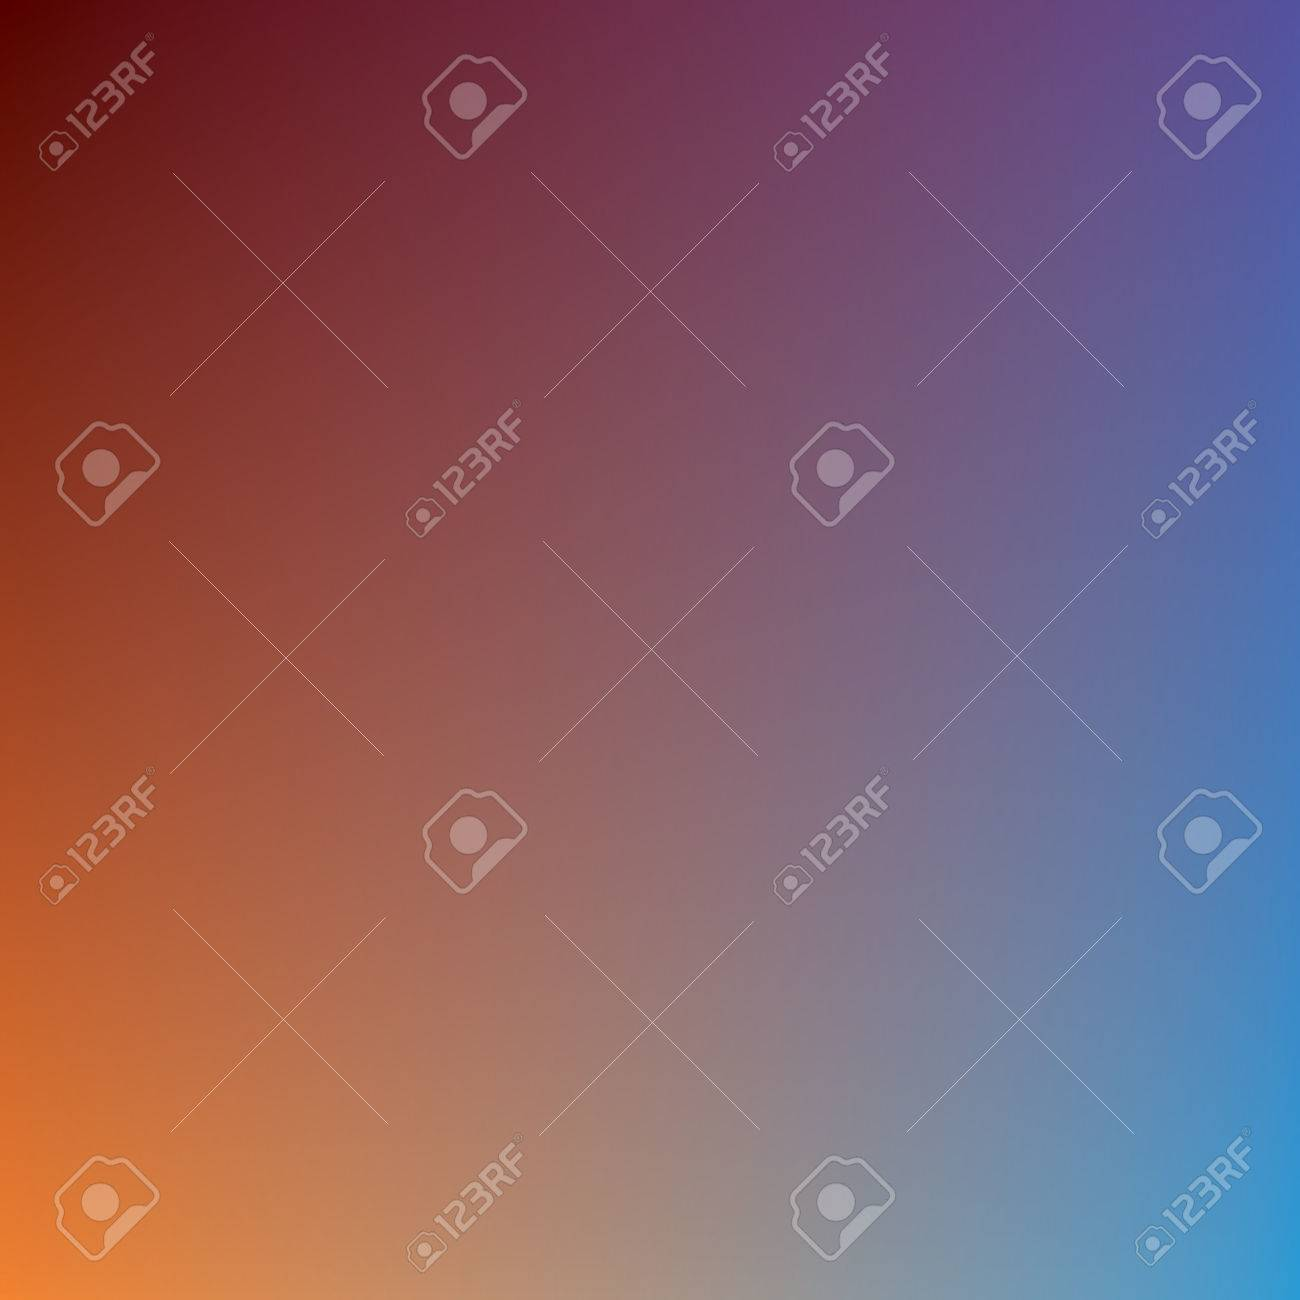 Abstract Vector Mesh Background Color Gradient Blue And Orange